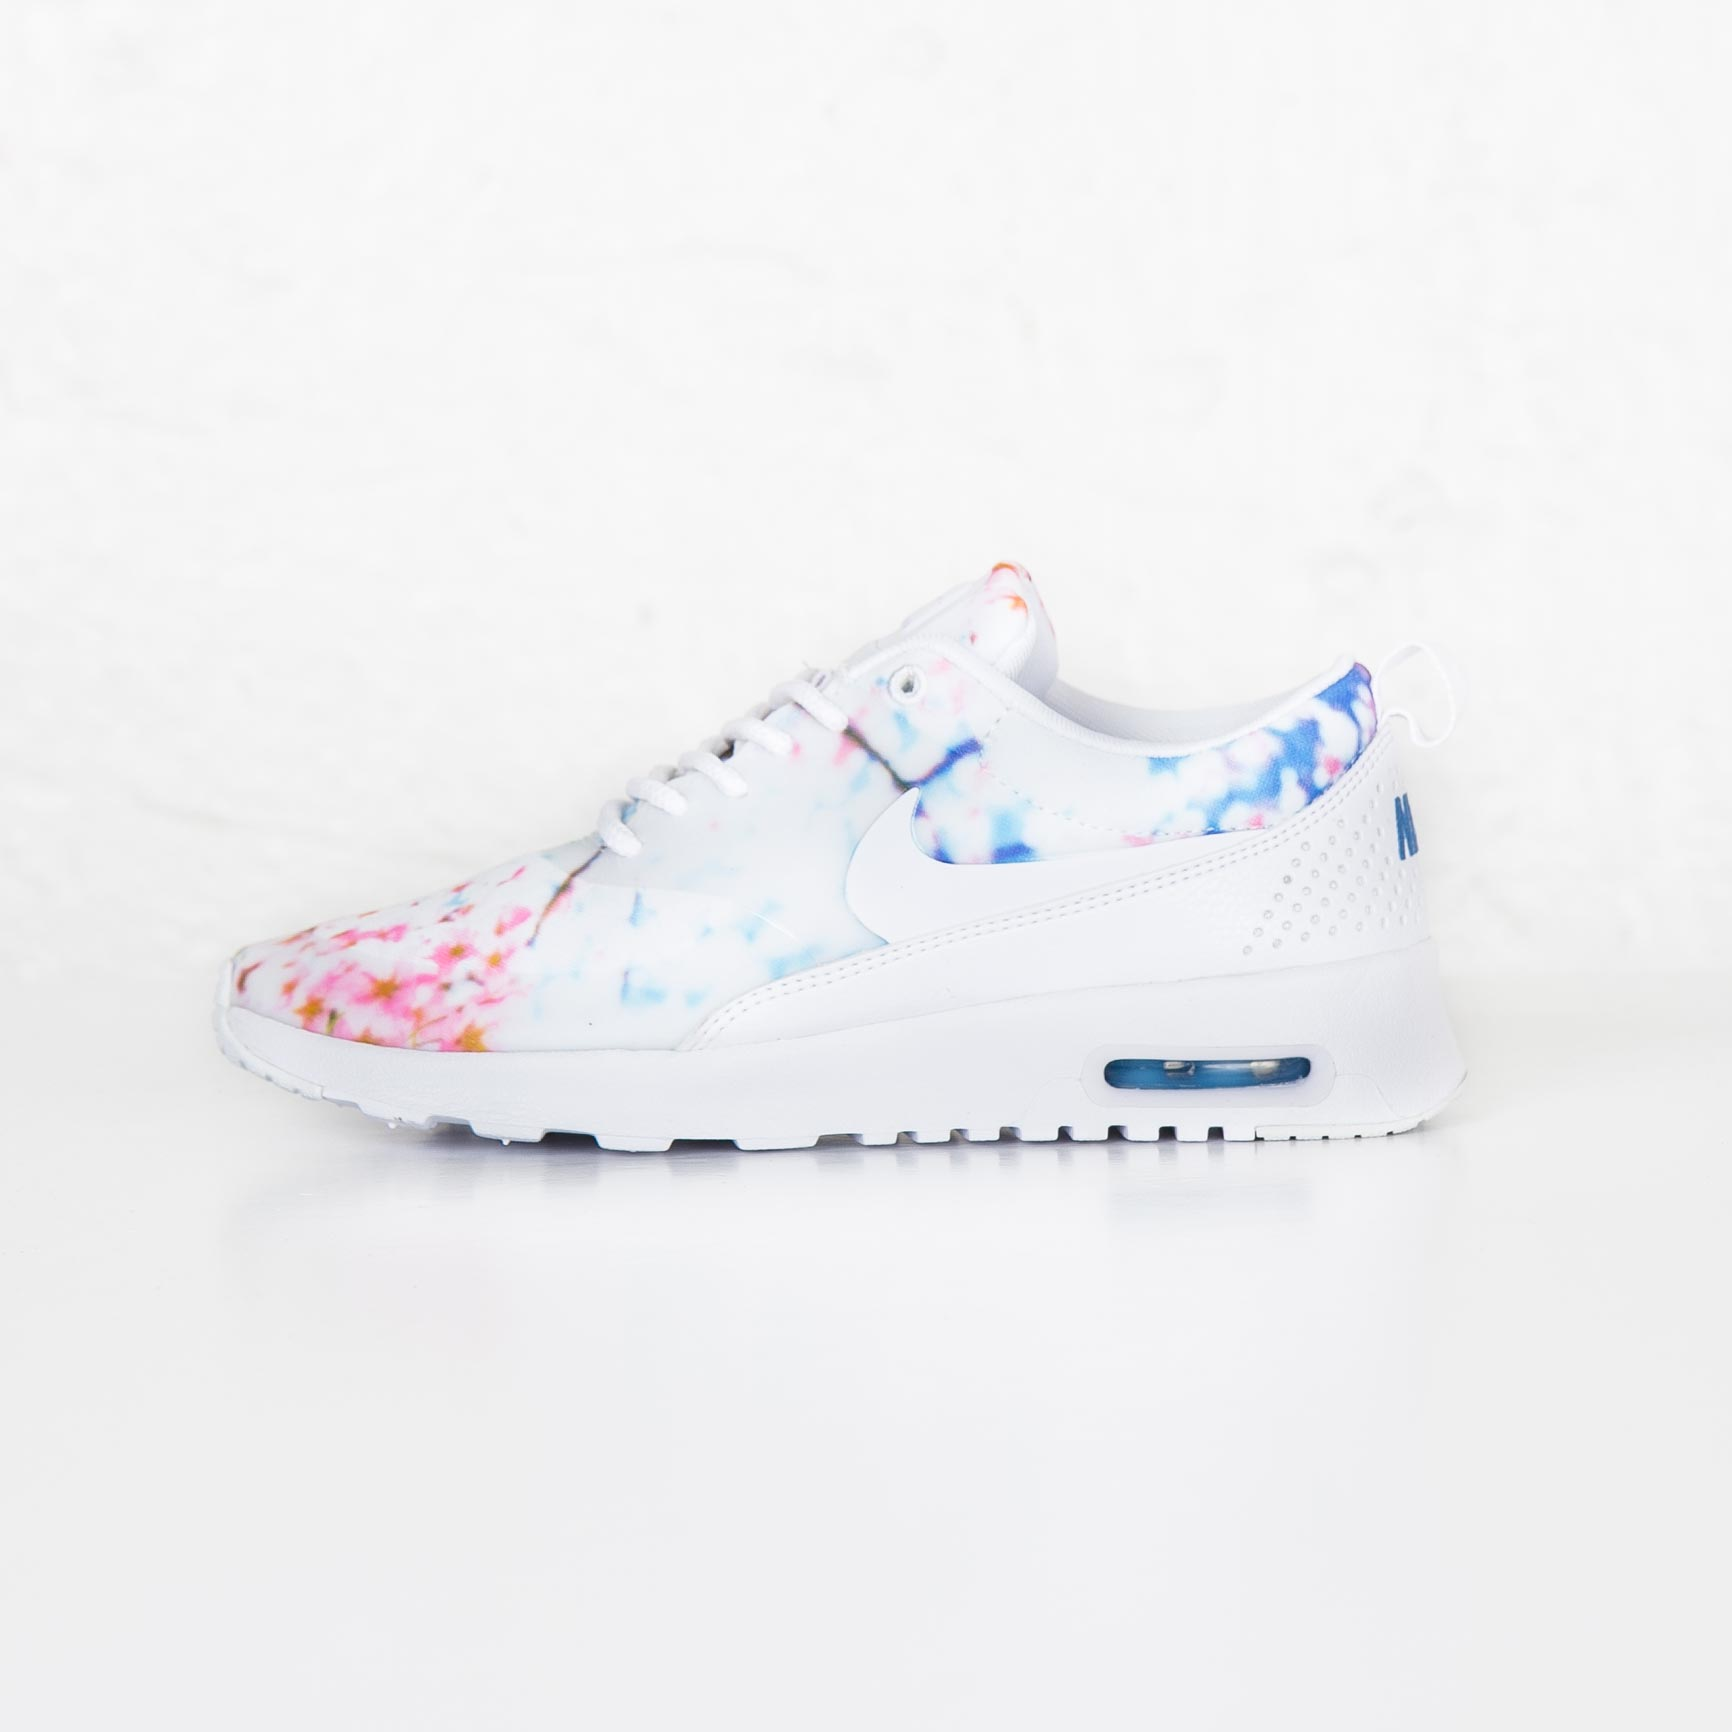 Shopping Nike Air Max Thea White University Blue Cherry